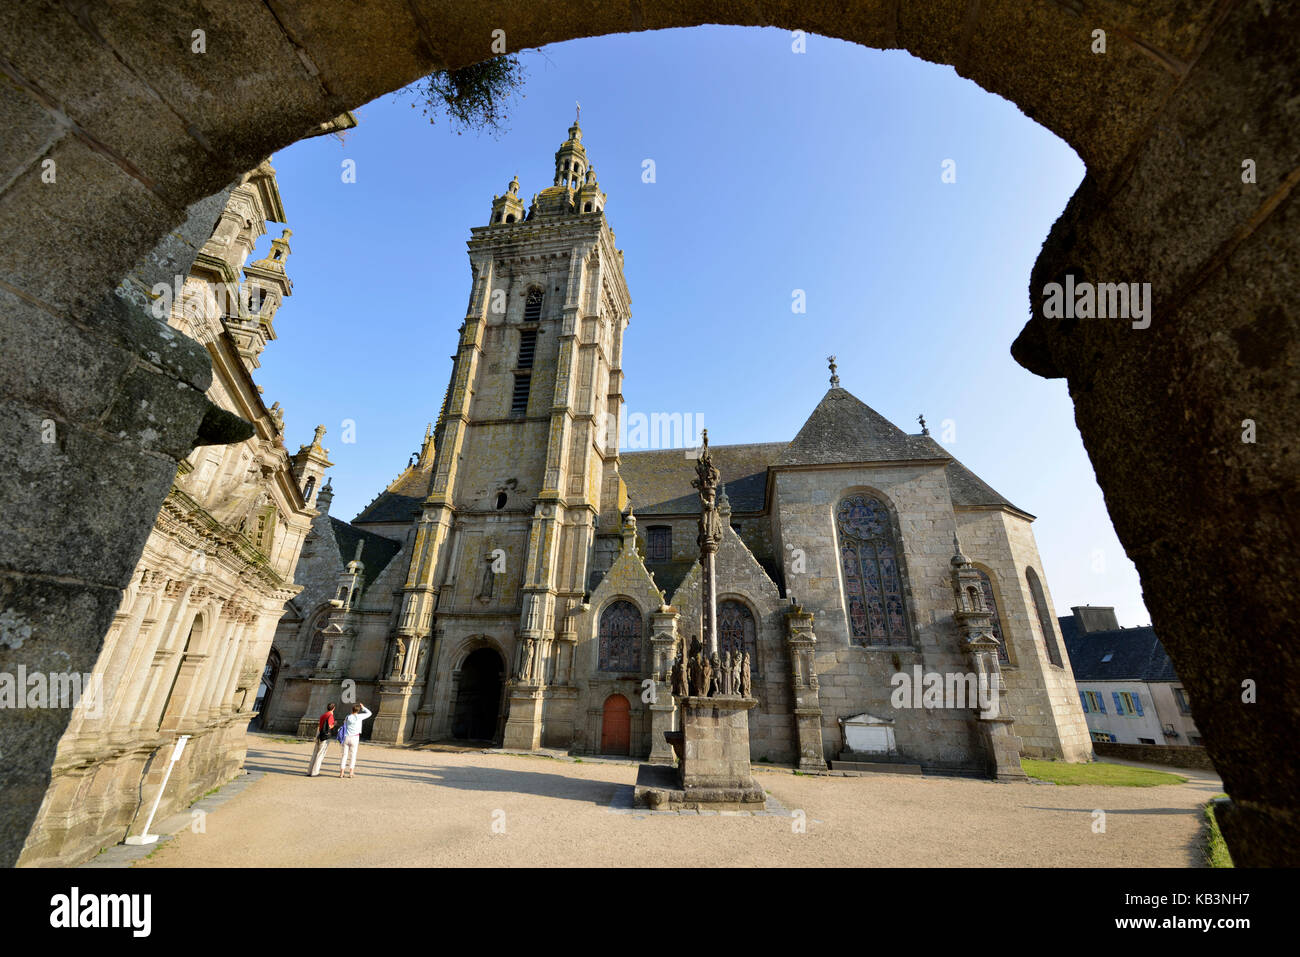 France, Finistere, stop on the Way of St James, St Thegonnec, parish enclosure, church and calvary - Stock Image